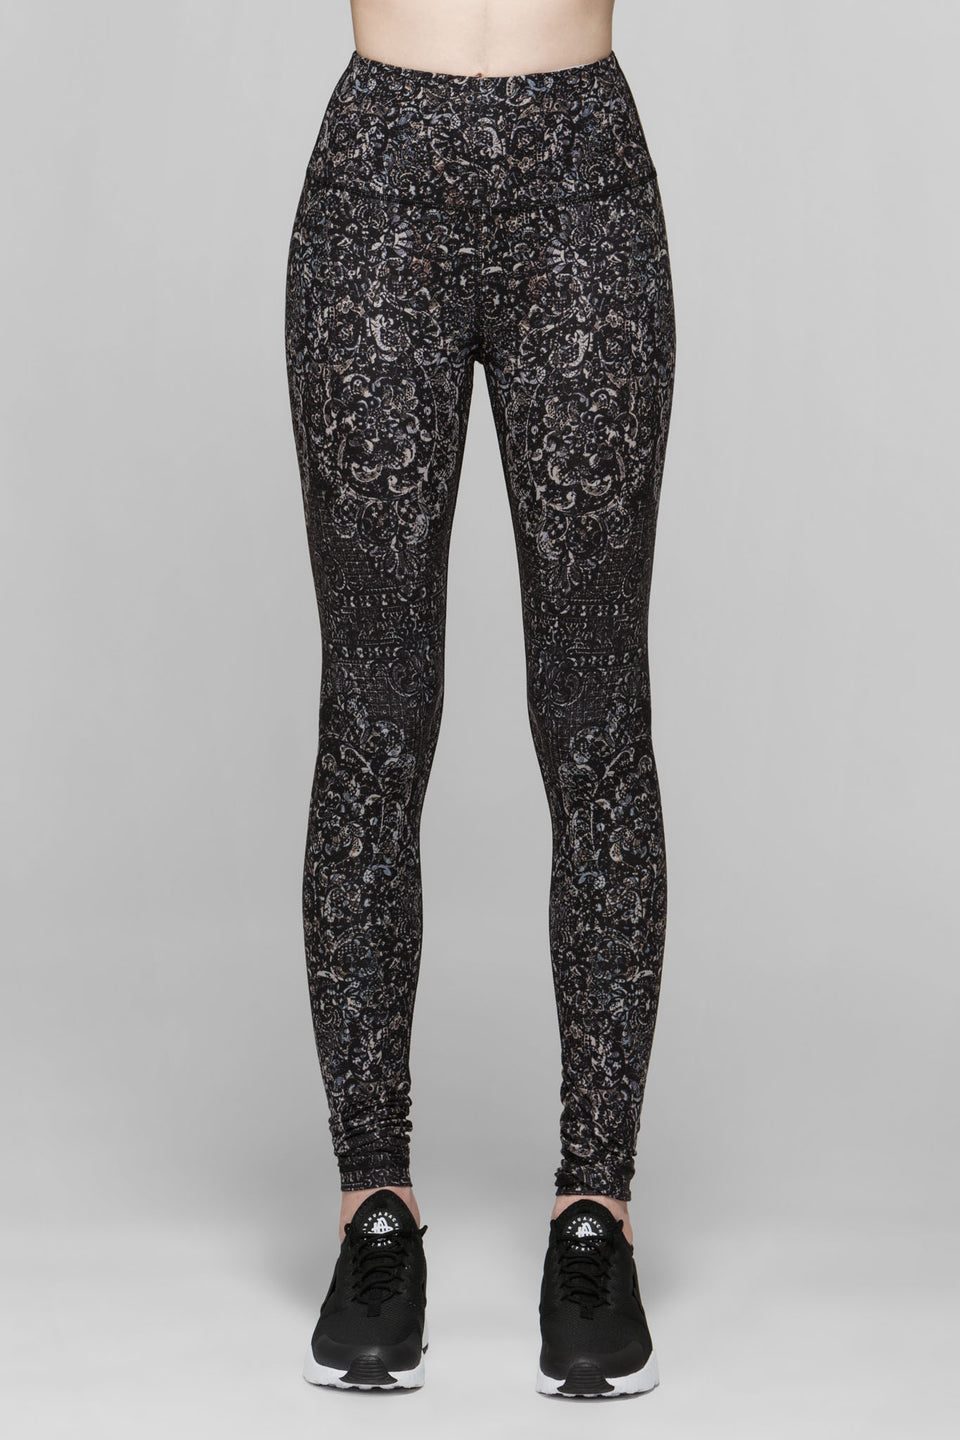 Aria Graphic Leggings